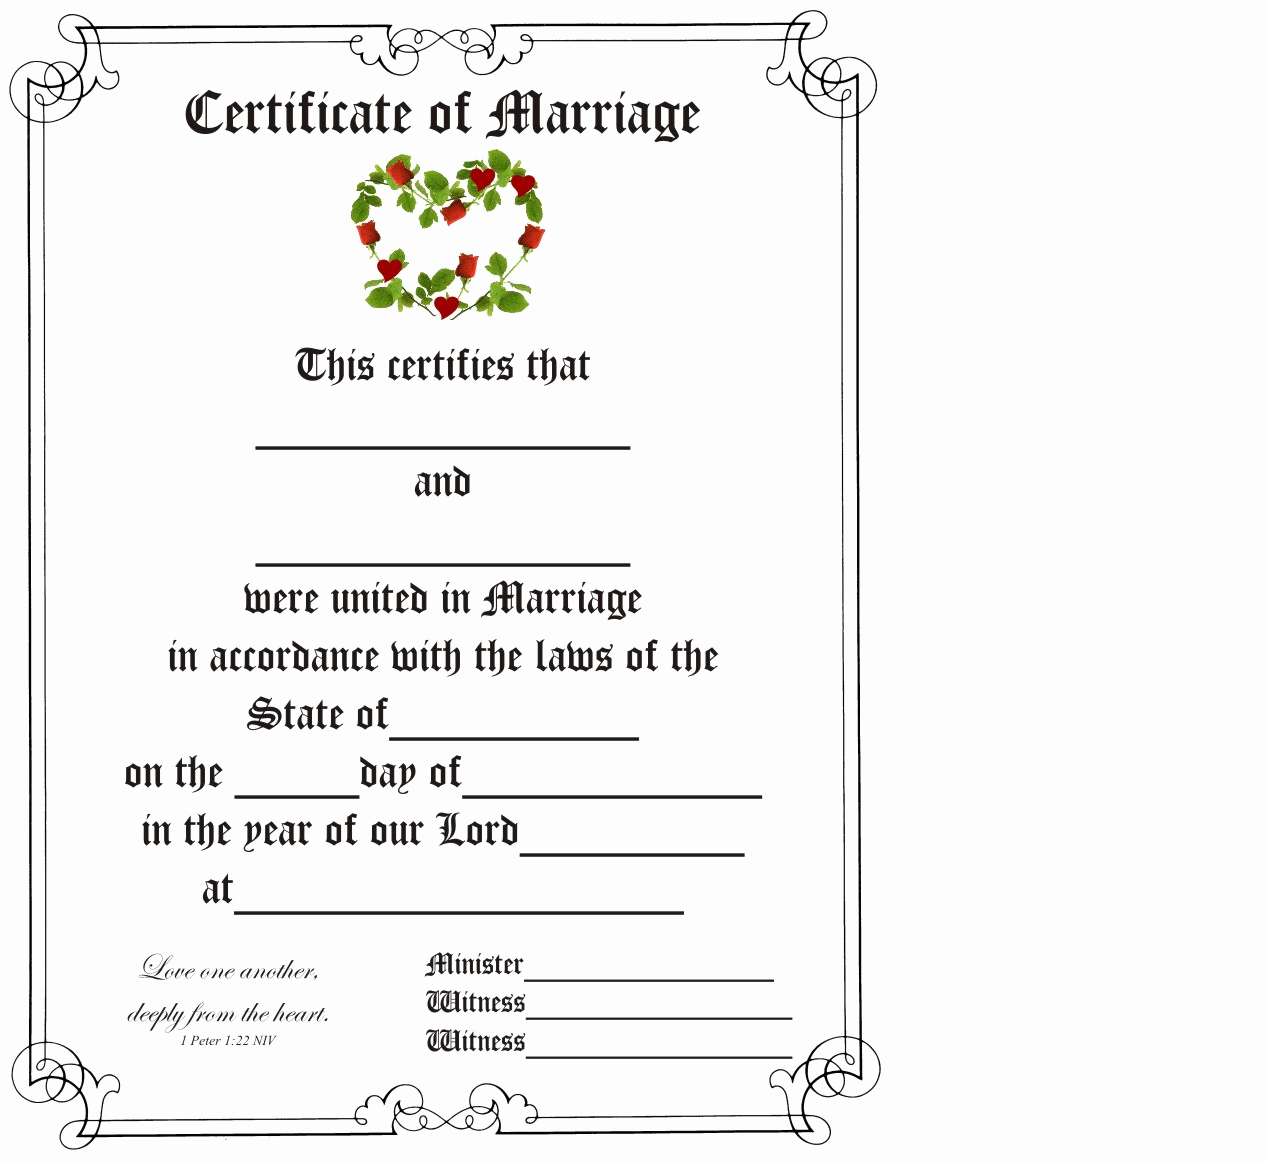 Islamic Marriage Certificate Template New Latest islamic Marriage Certificate Template Waraw